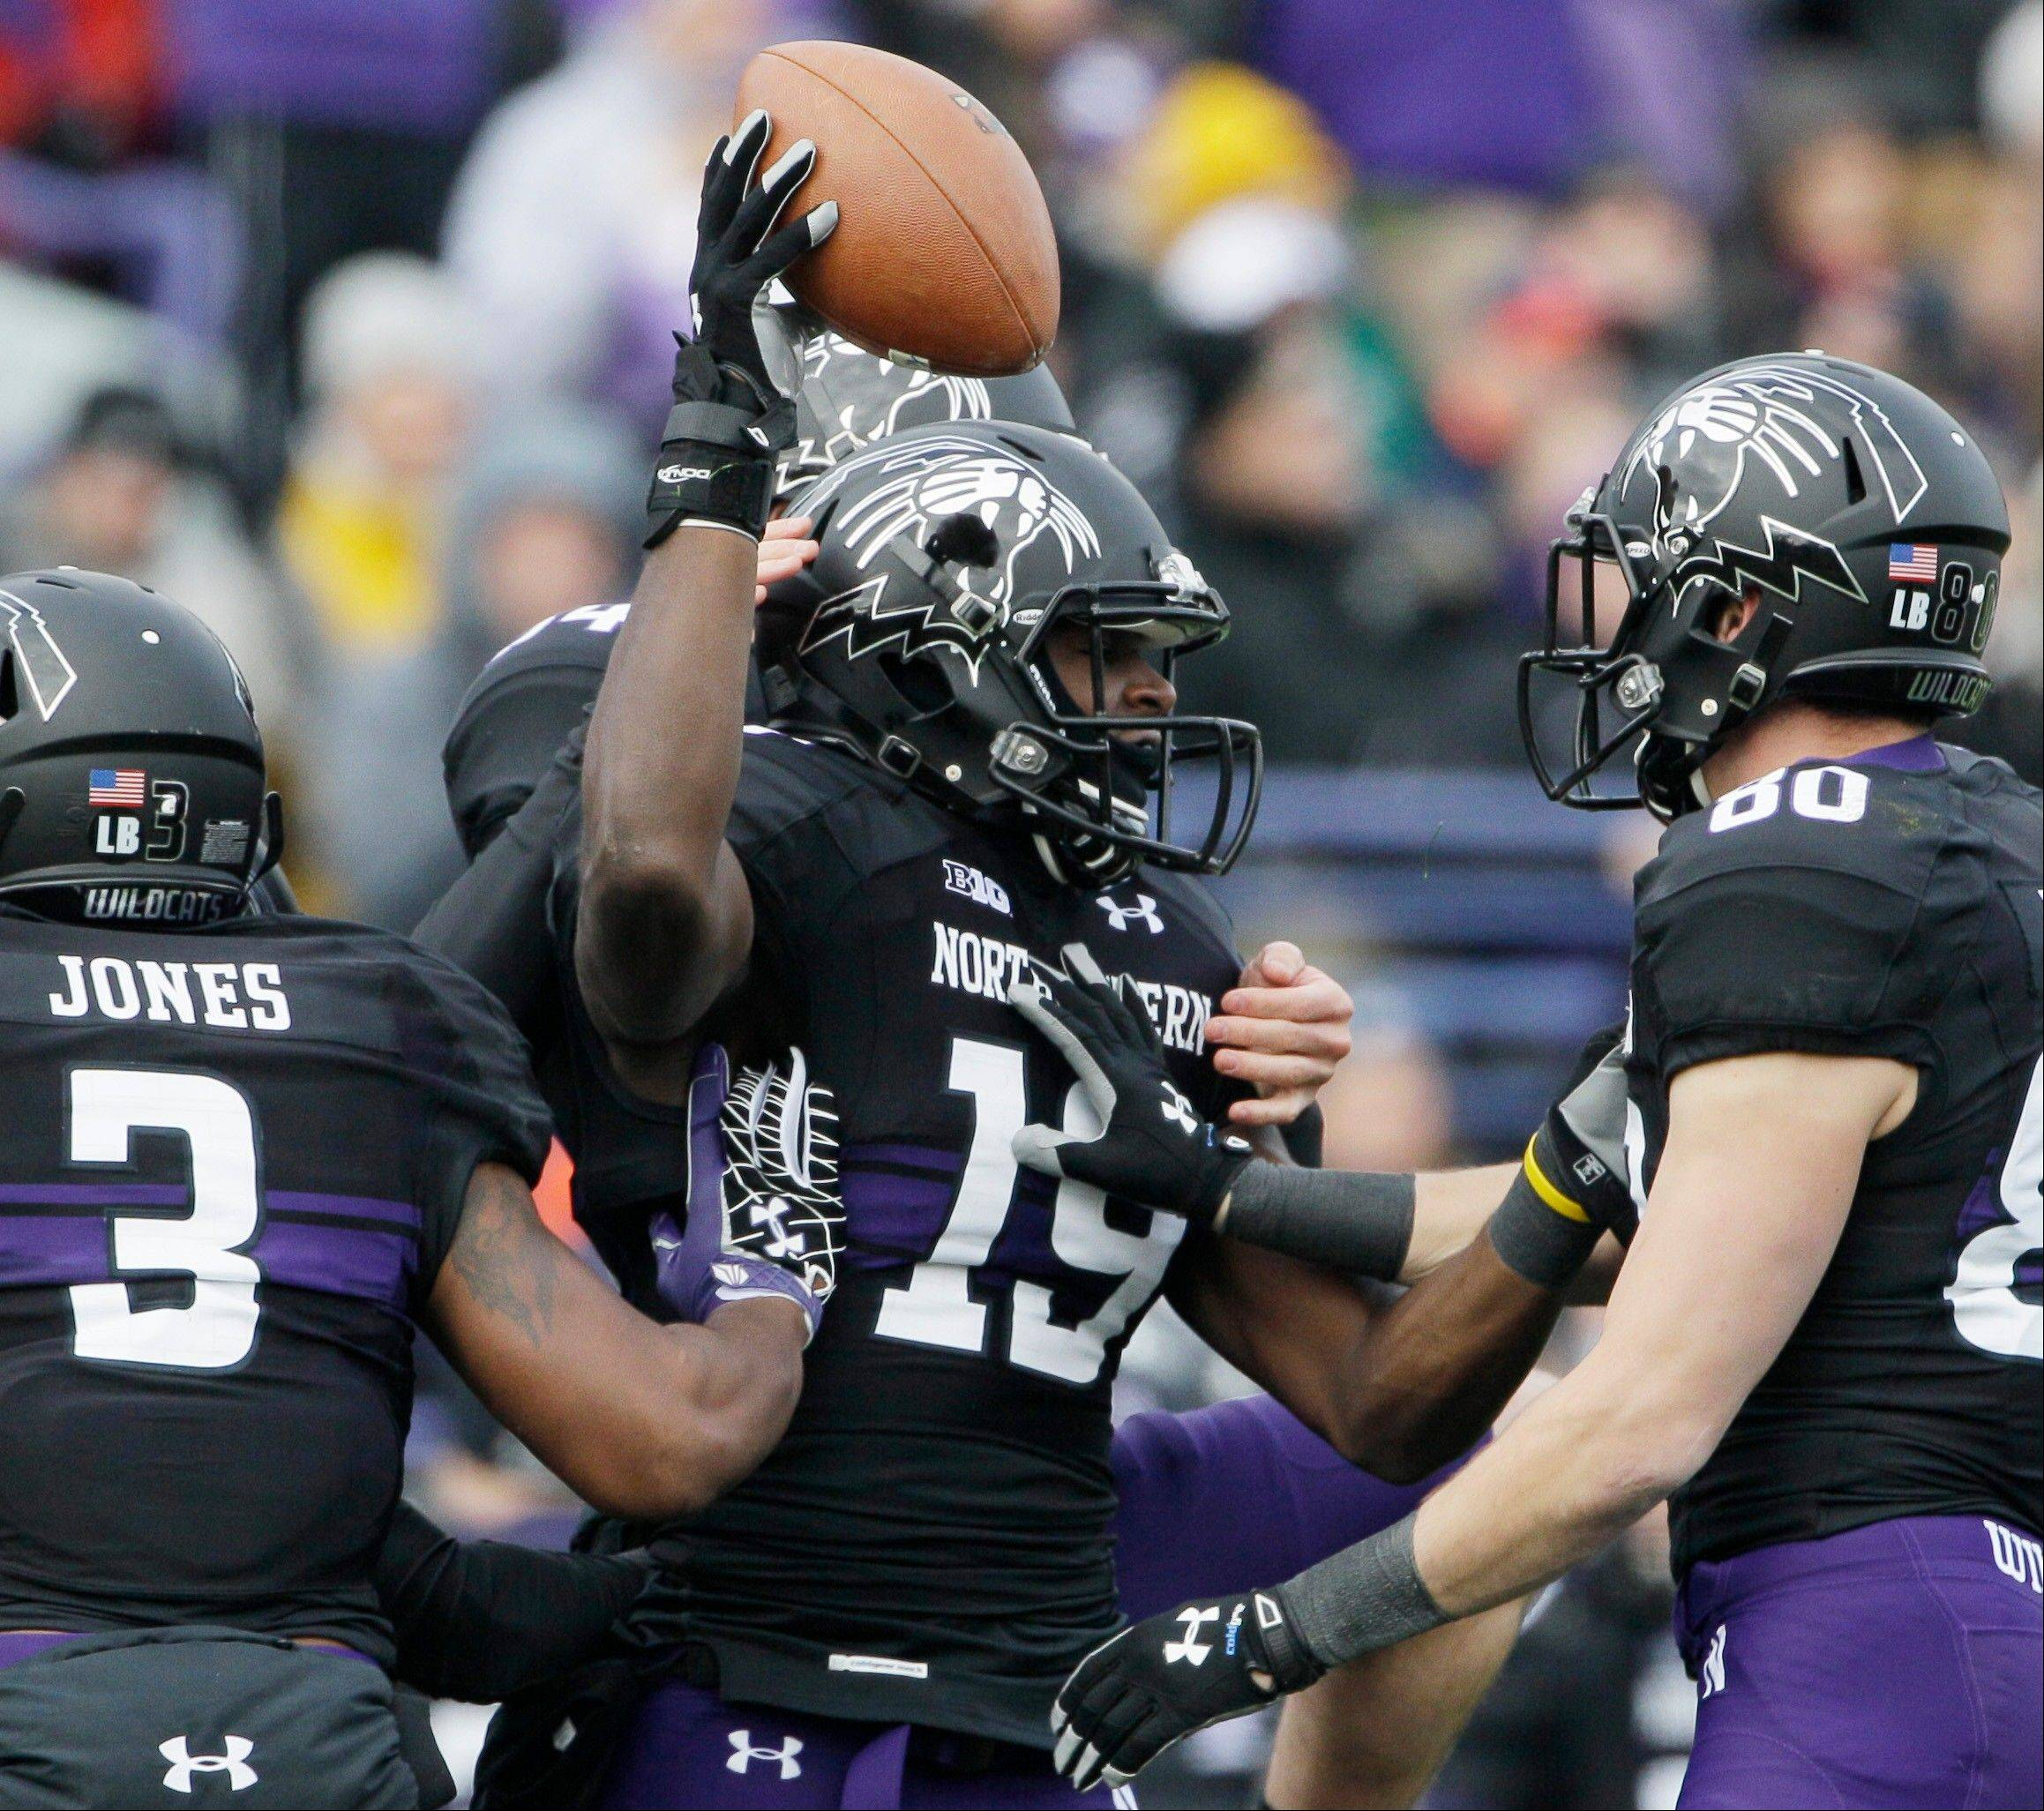 Northwestern wide receiver Cameron Dickerson (19) celebrates with teammates after recovering a fumble by Illinois defensive back Justin Green (26) Saturday during the first half in Evanston.